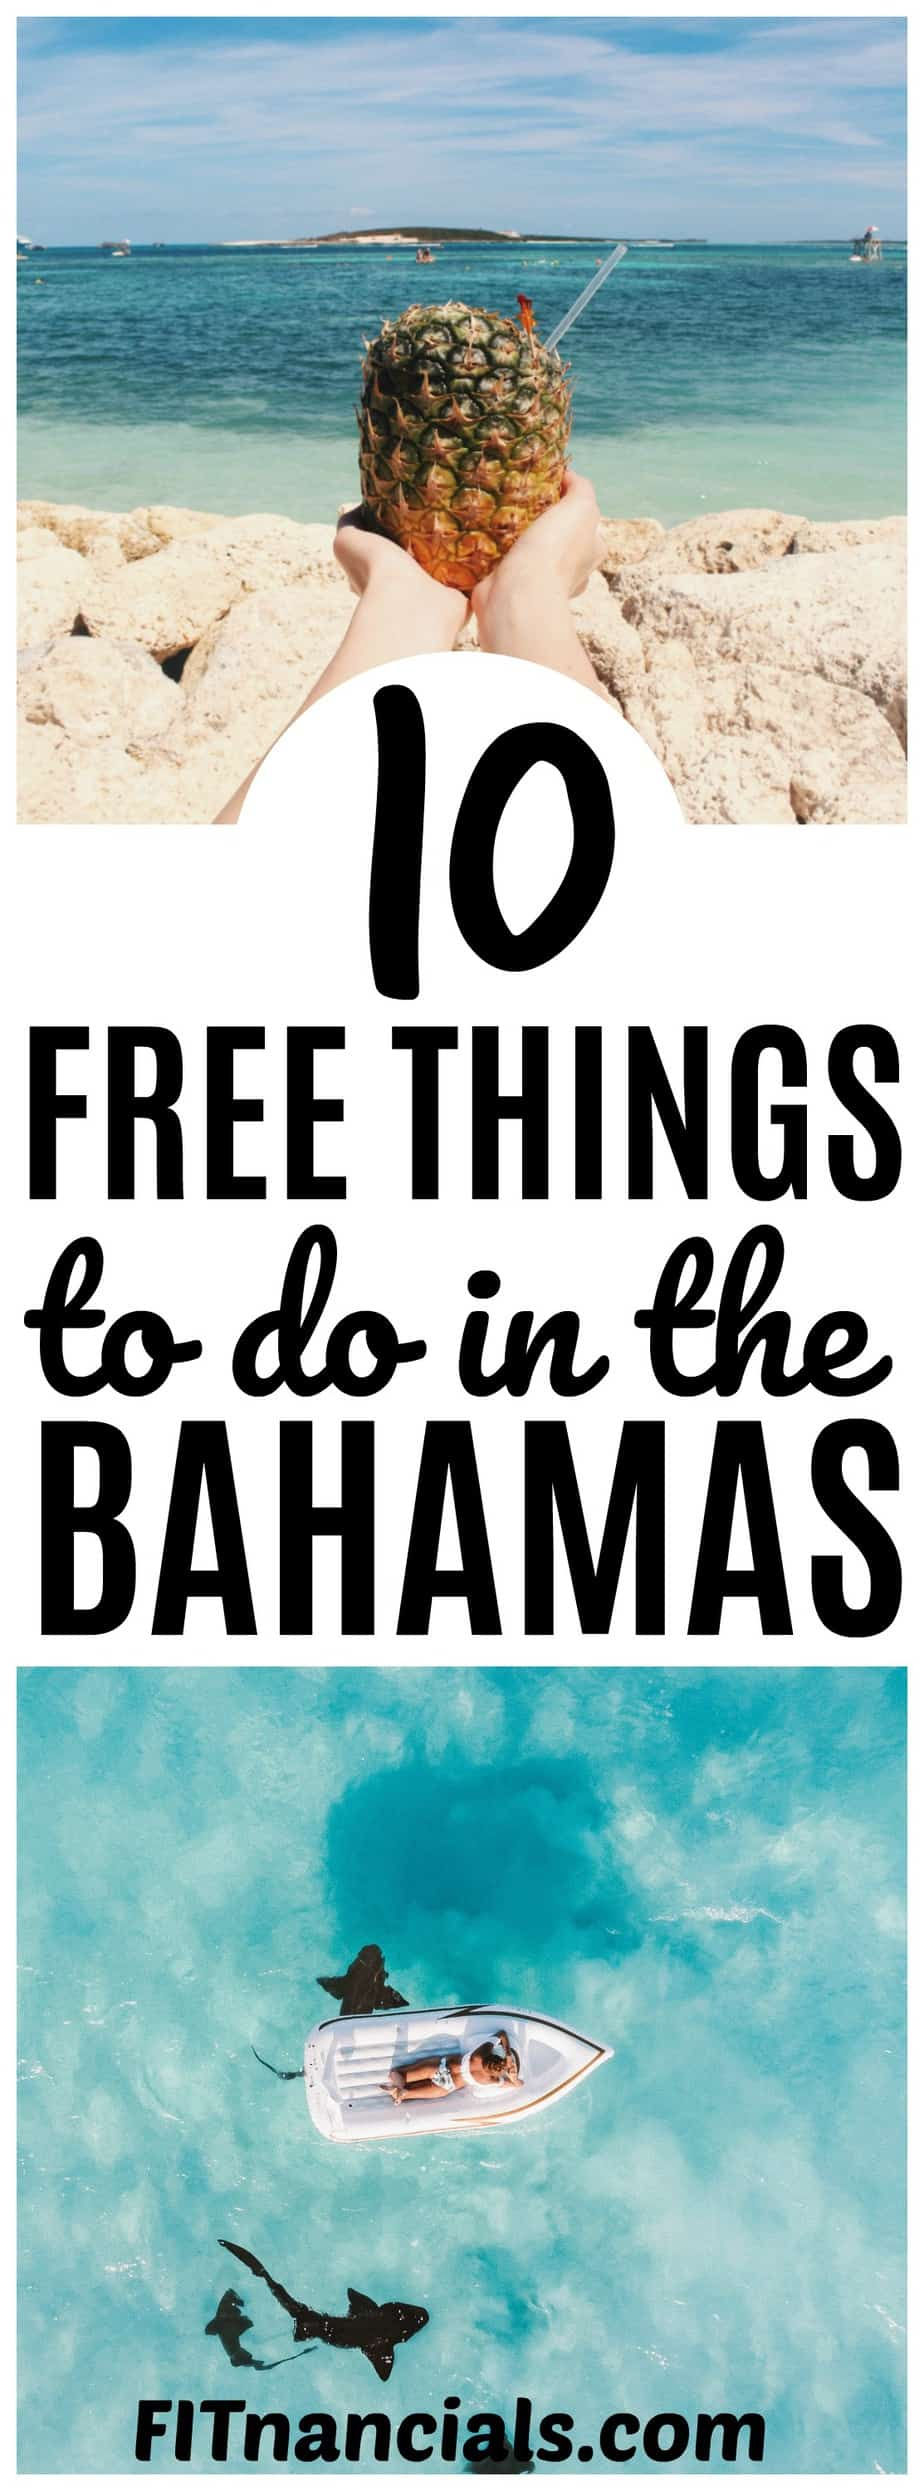 10 Free Things To Do In The Bahamas #bahamas #nassau #eleuthera